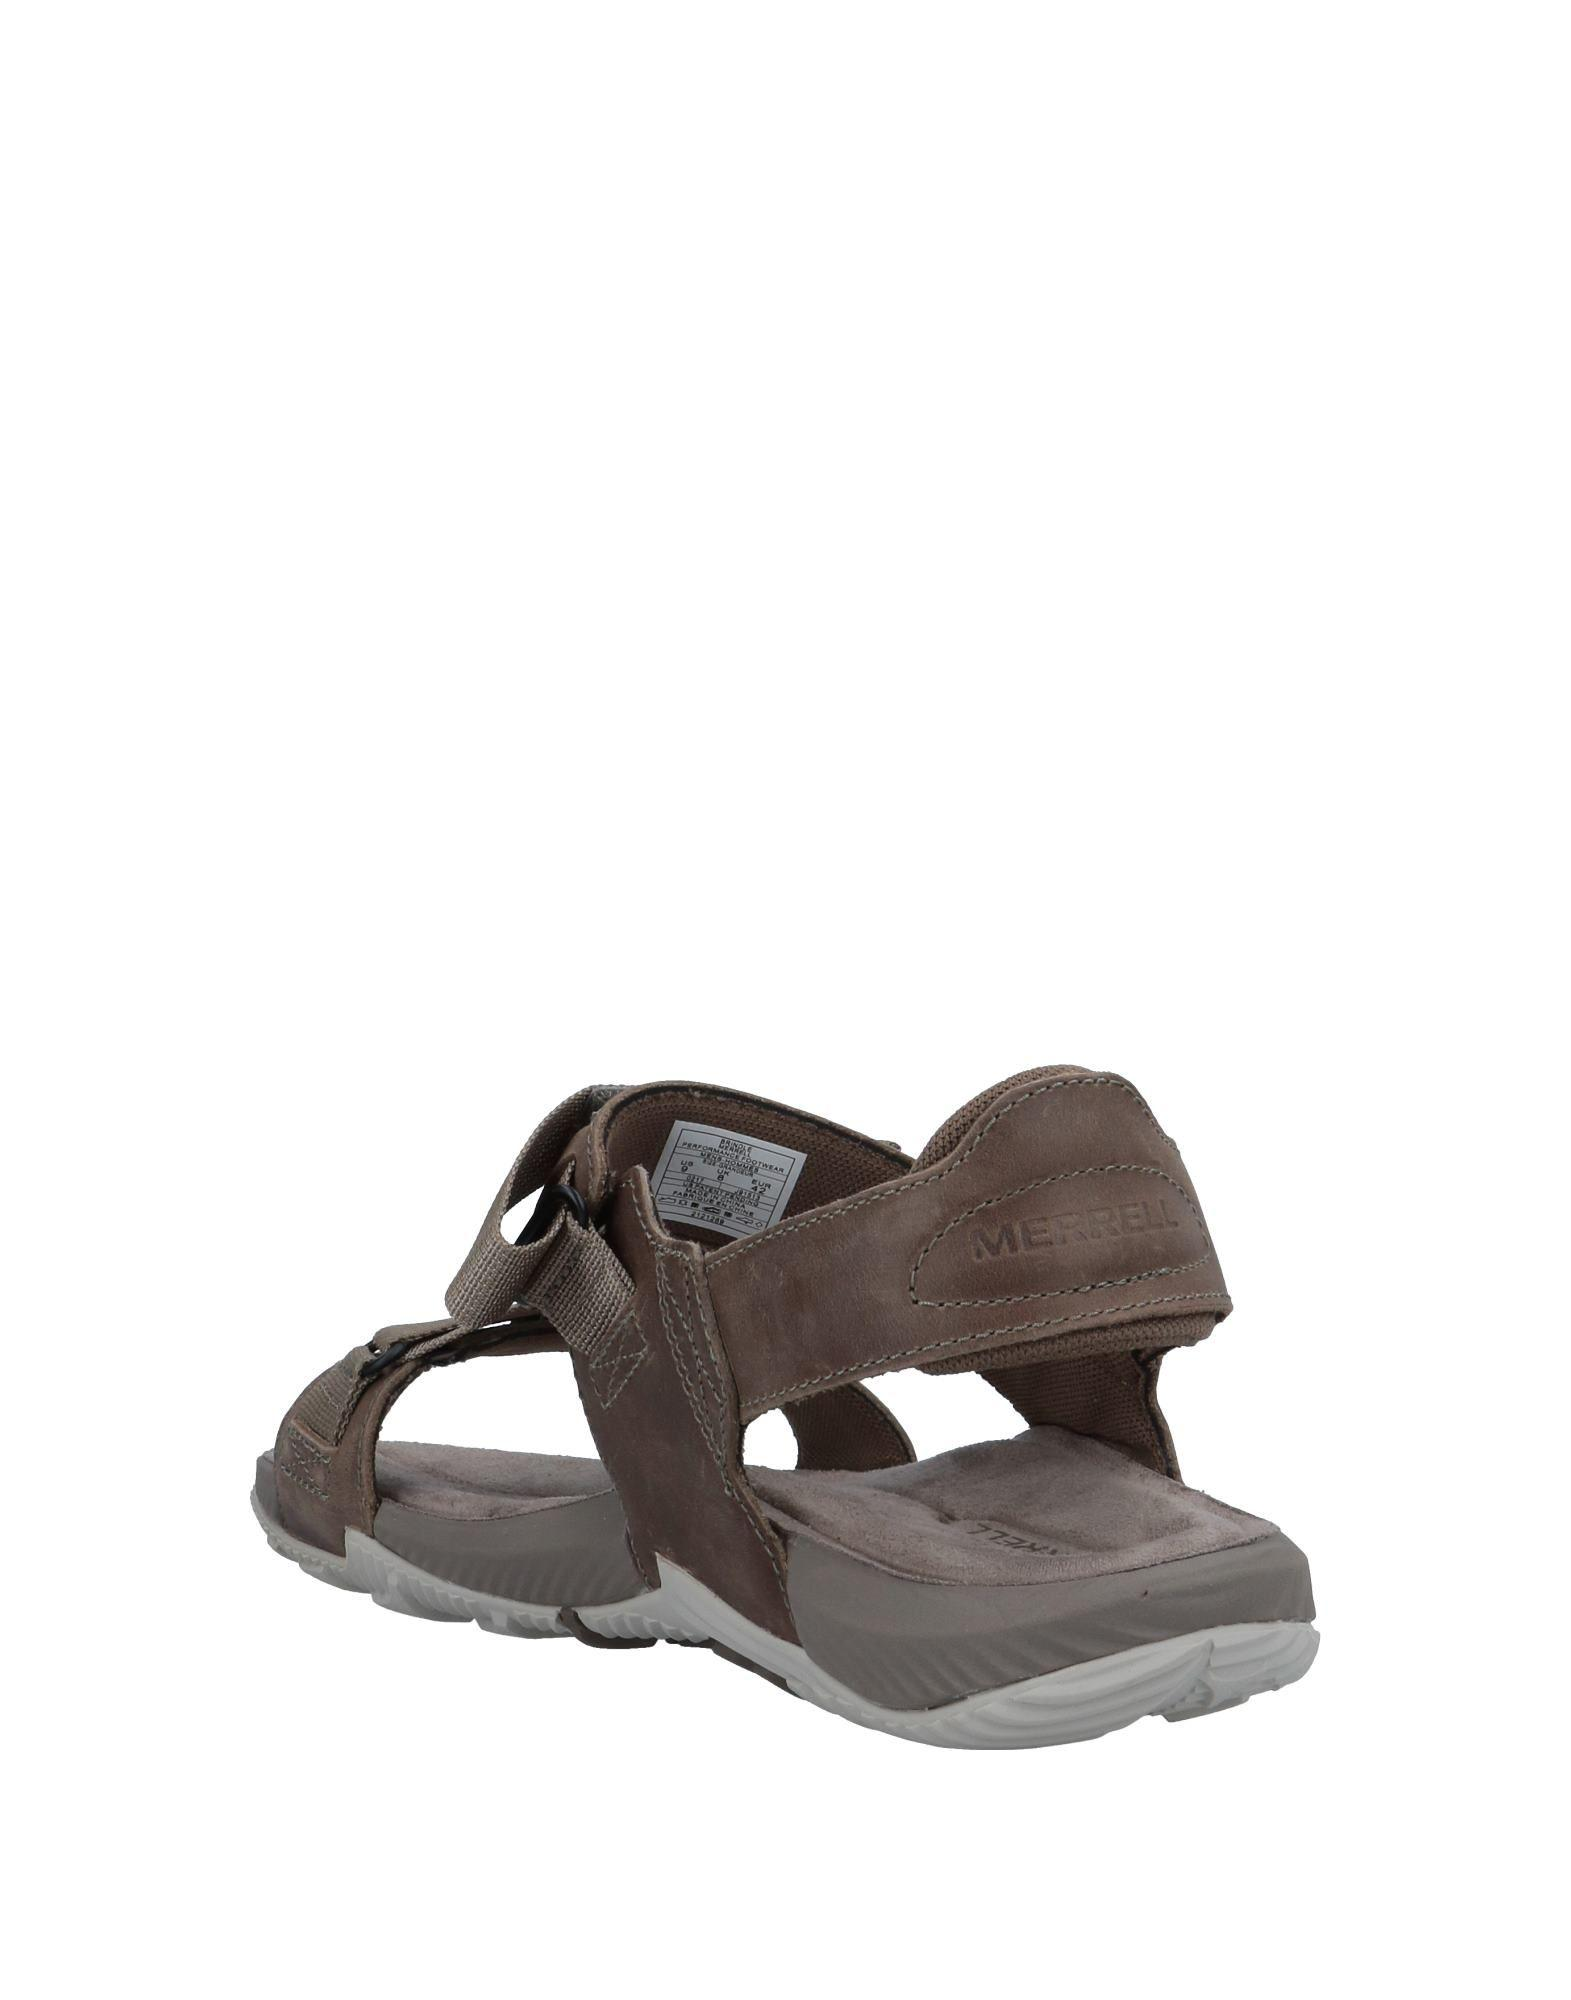 2359d41db049 Merrell Sandals for Men - Lyst